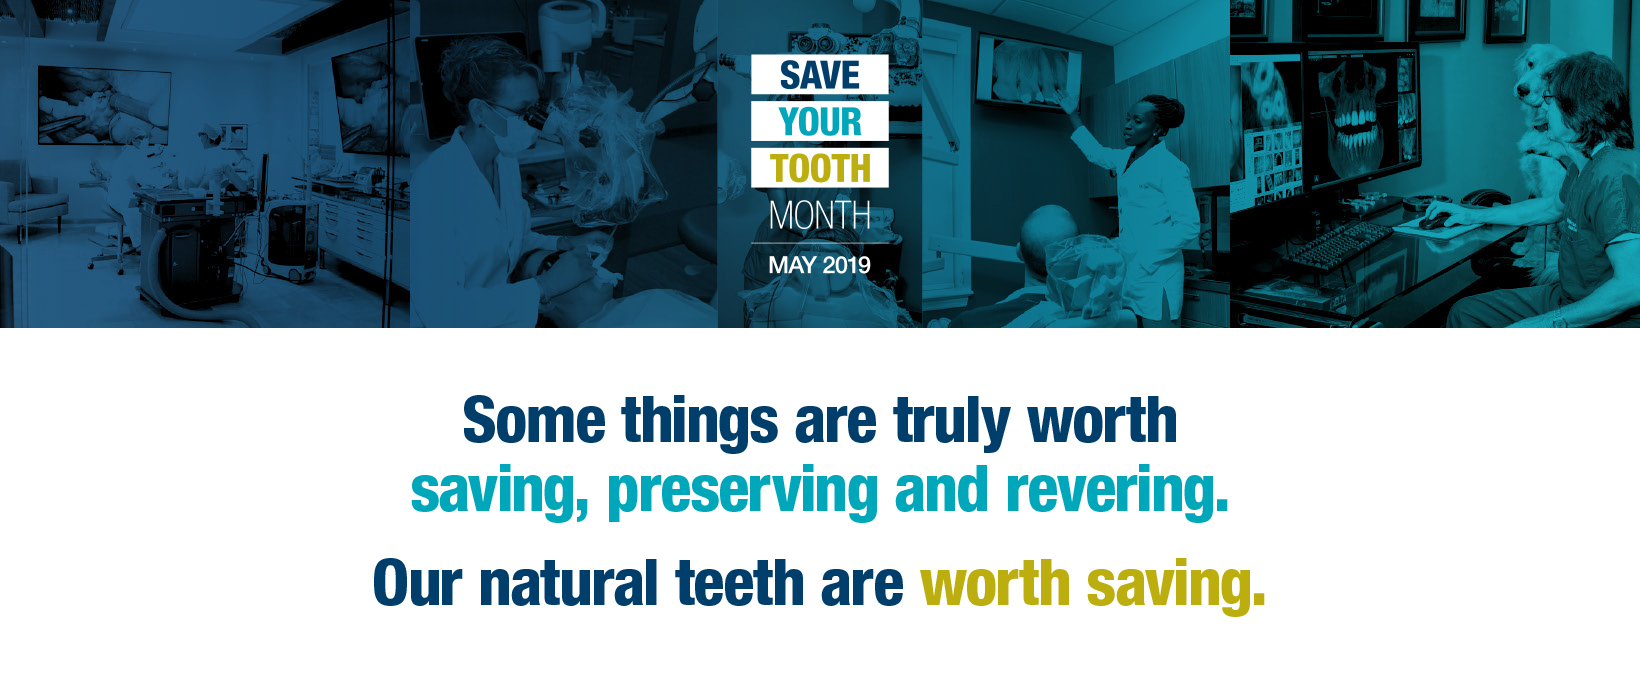 Save Your Tooth Month